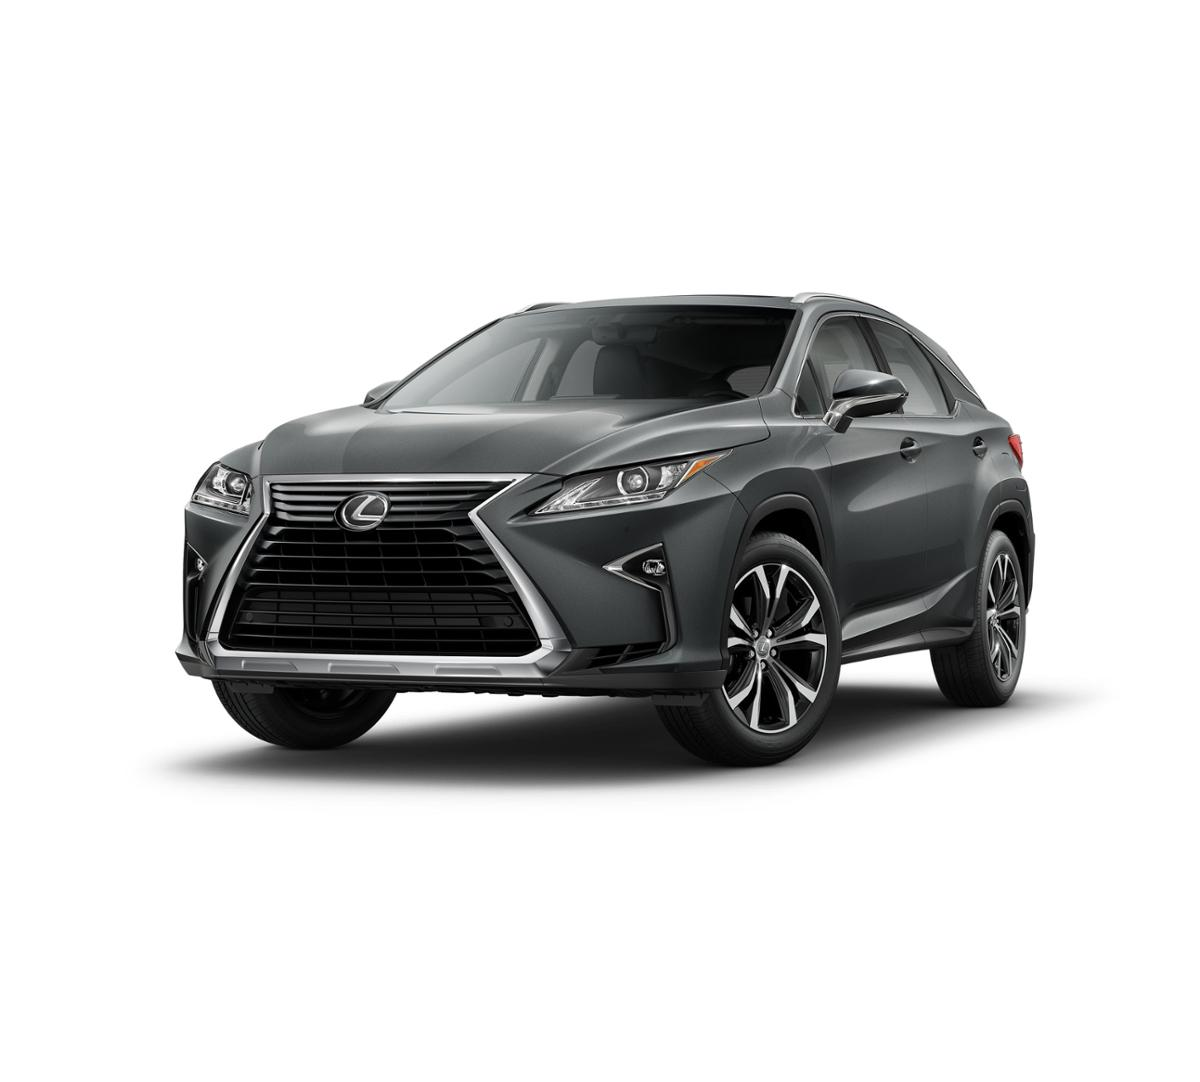 2018 Lexus RX 350 Vehicle Photo in Lakeway, TX 78734